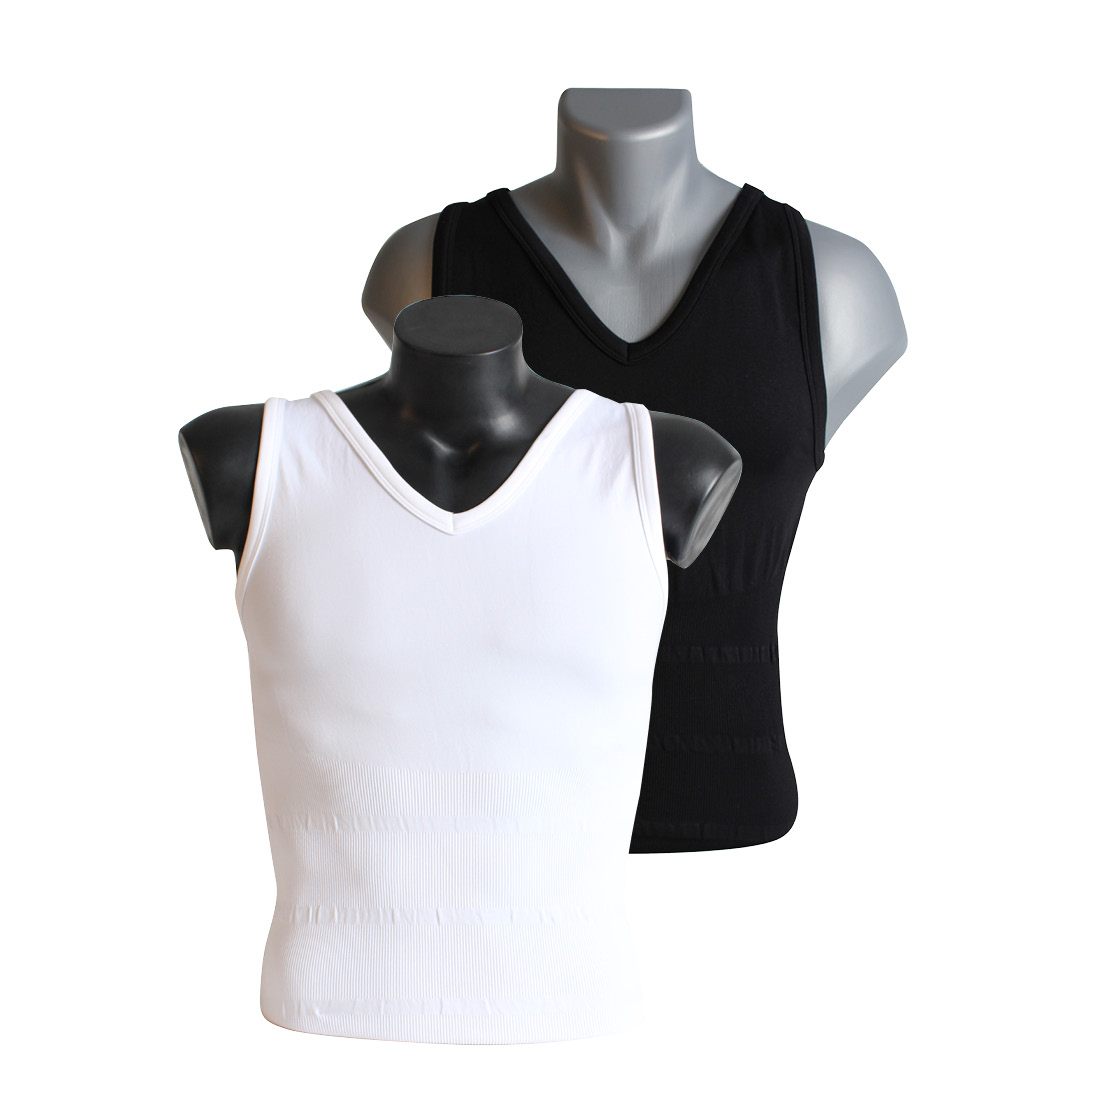 An image of Tone Tee White Vest XL